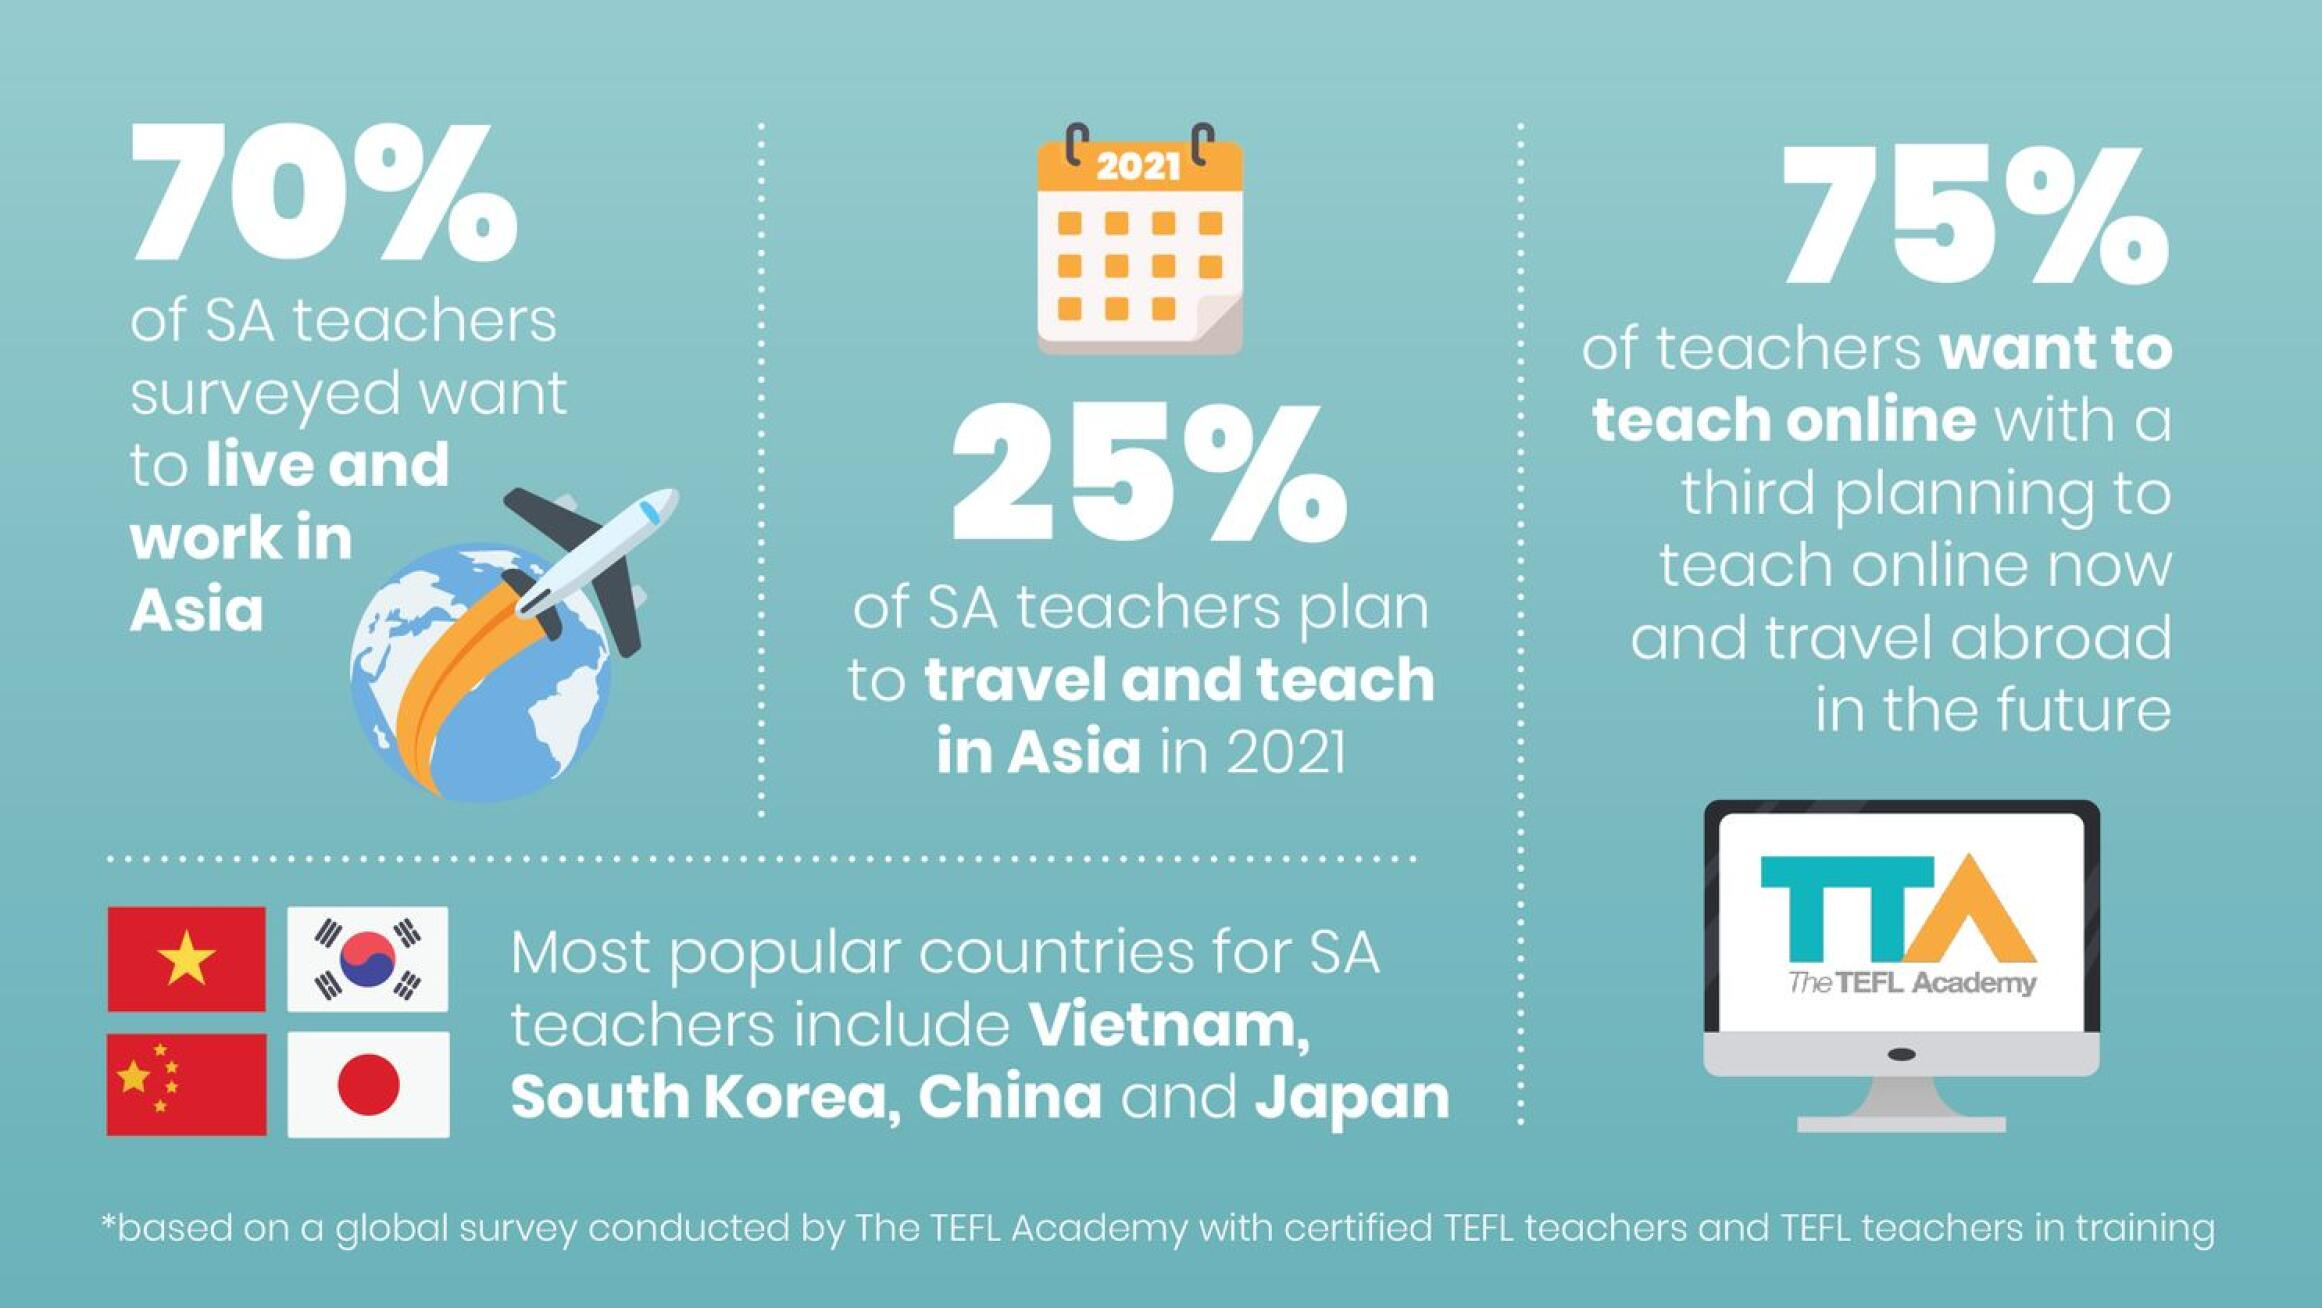 Infogrpahic showing teachers' migration.